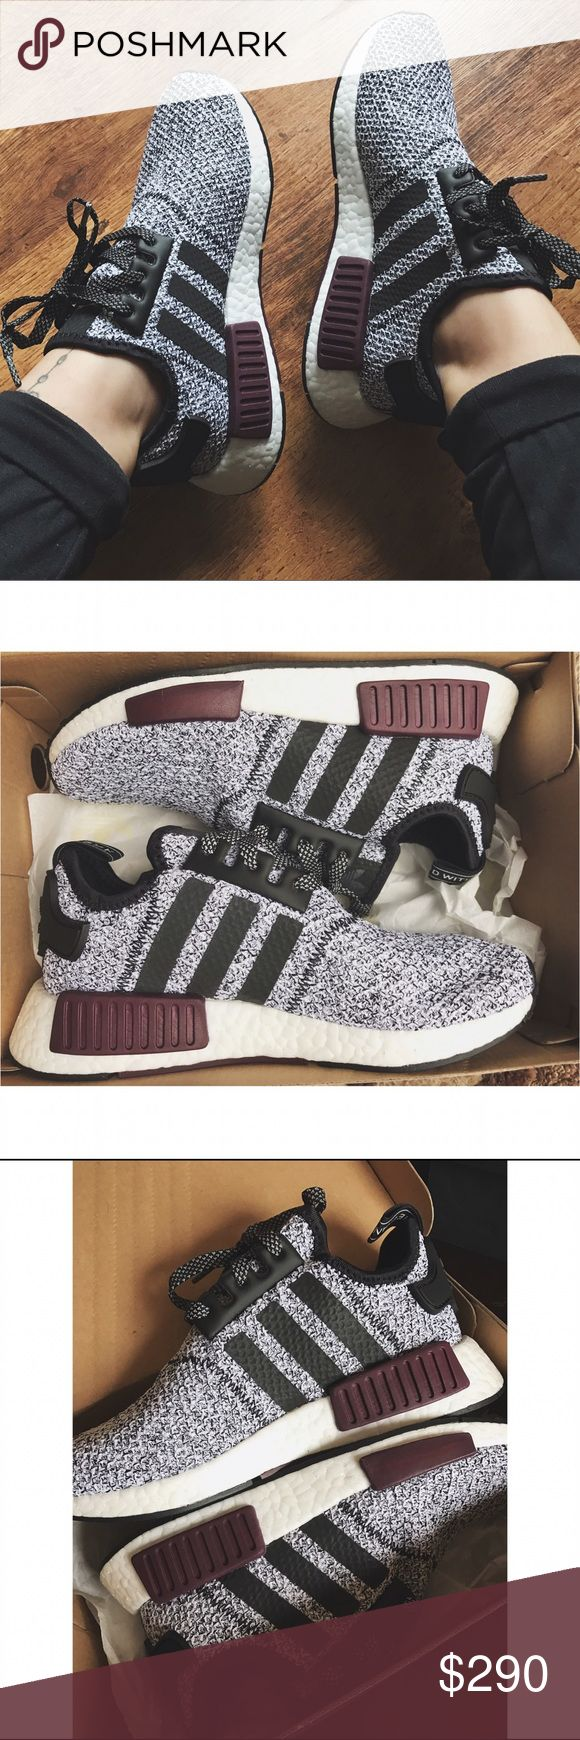 Adidas NMD R1 Champs Exclusive Youth 5= women's 6.5. Fit me and I'm a 7! These run a half size large! Brand new, with box. Price firm through Poshmark. Adidas Shoes Athletic Shoes